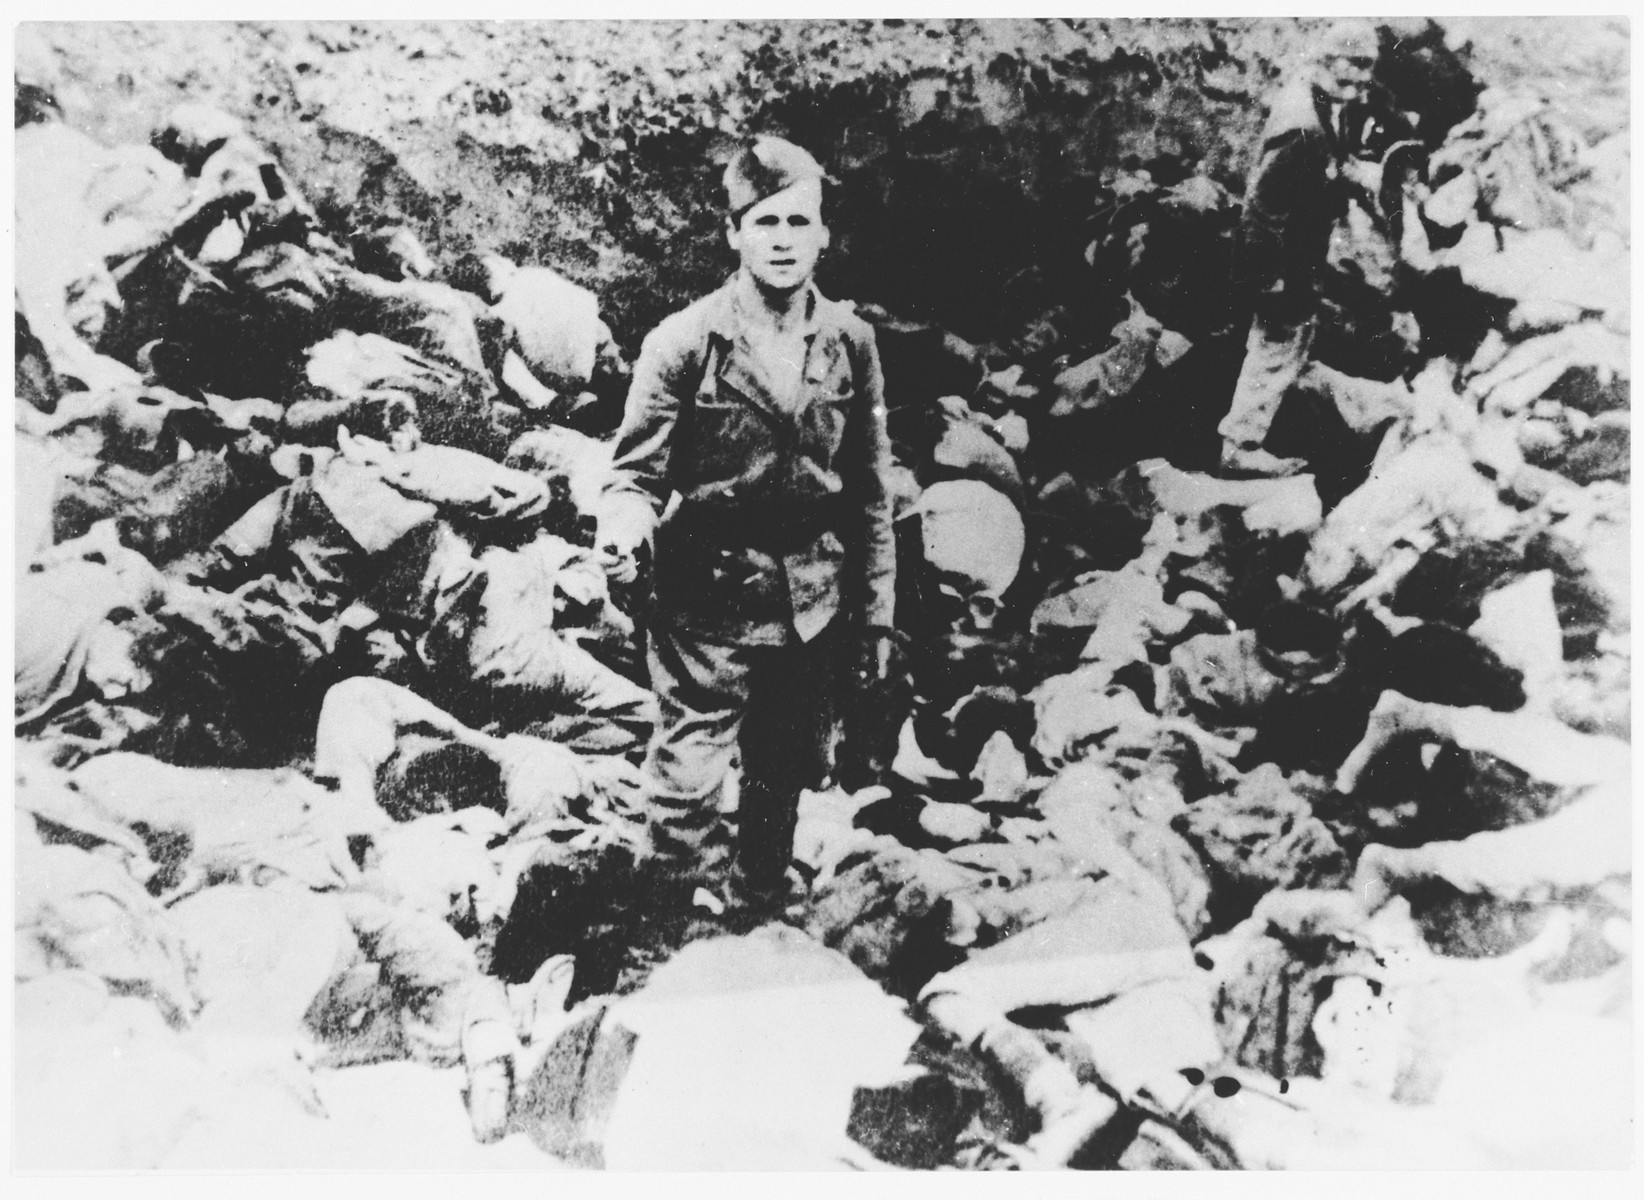 An Ustasa guard stands among the bodies of prisoners murdered in the Jasenovac concentration camp.